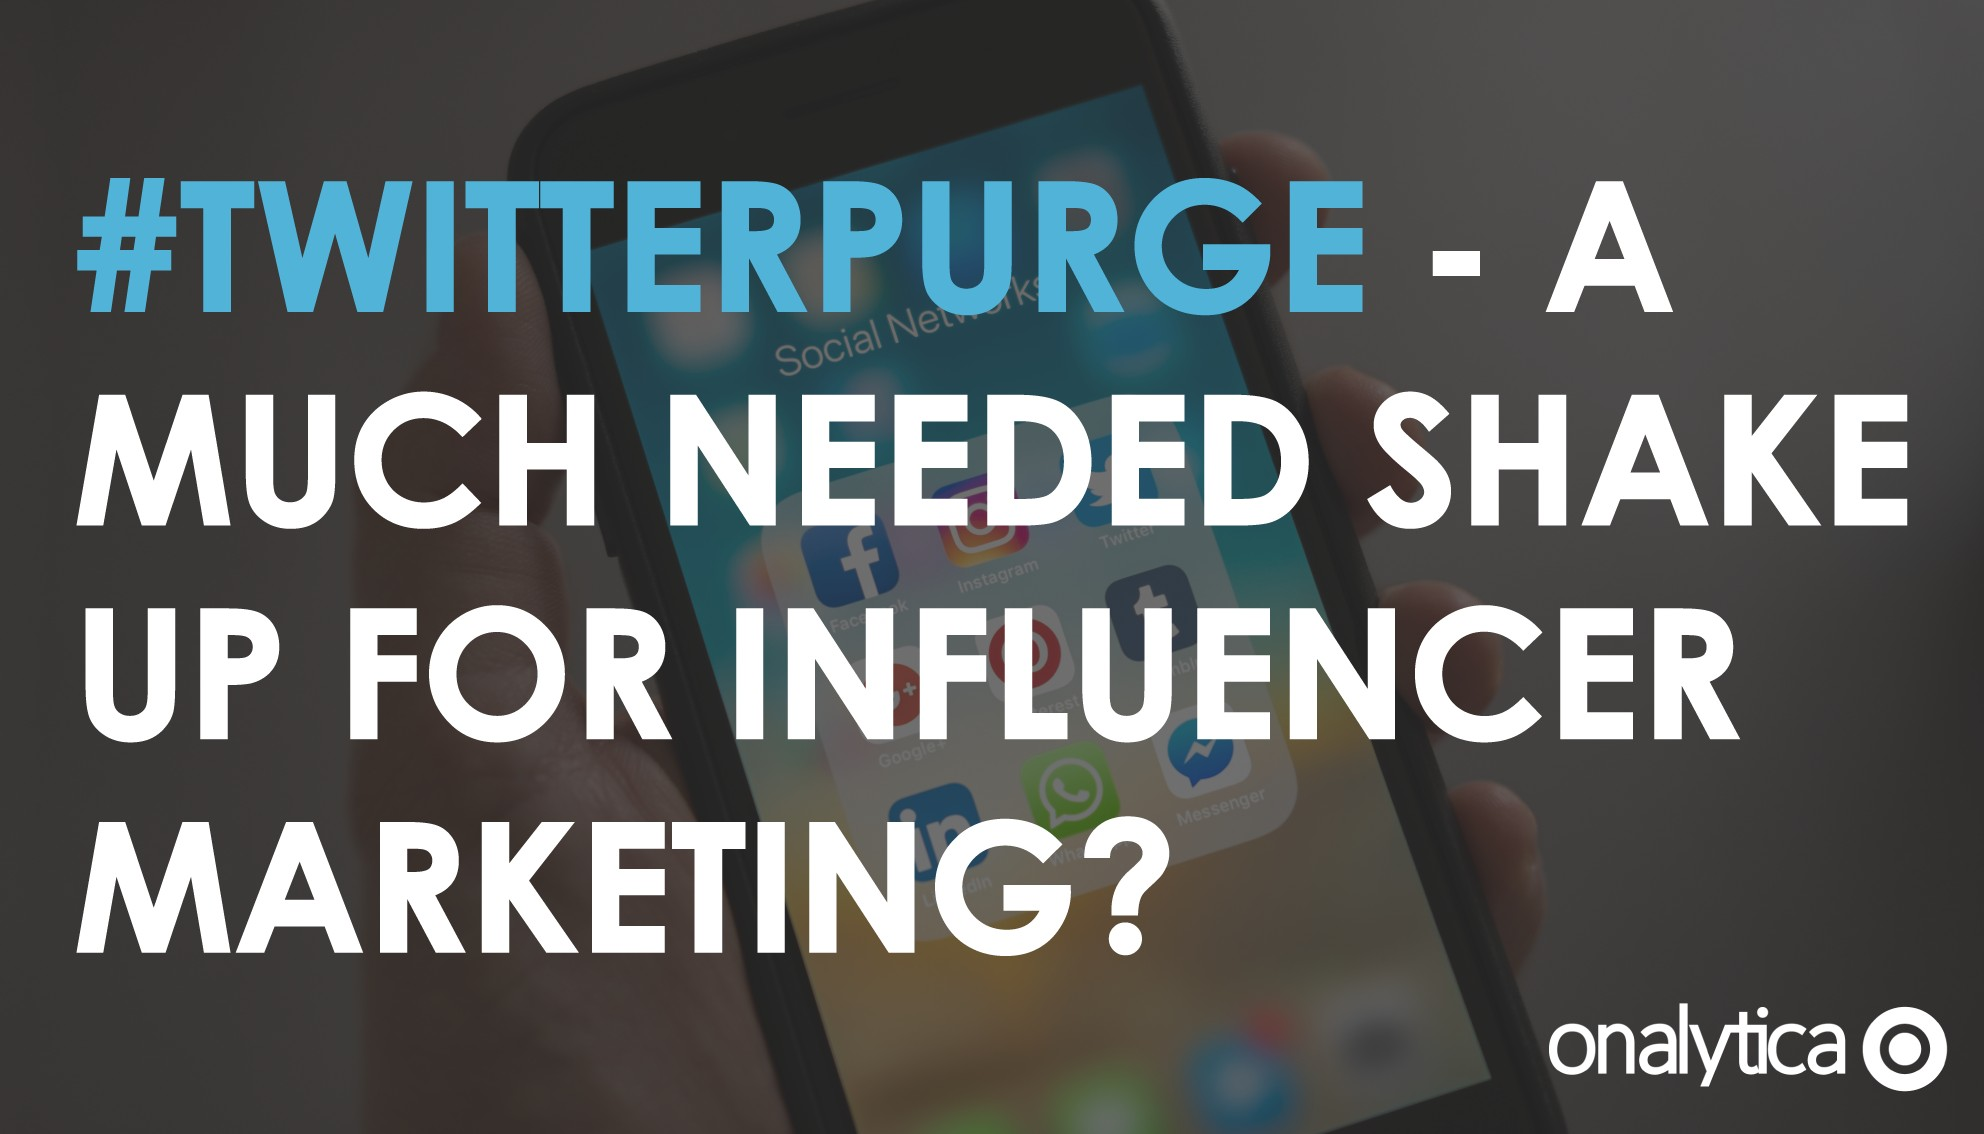 TwitterPurge - a Much Needed Shake up for Influencer Marketing?